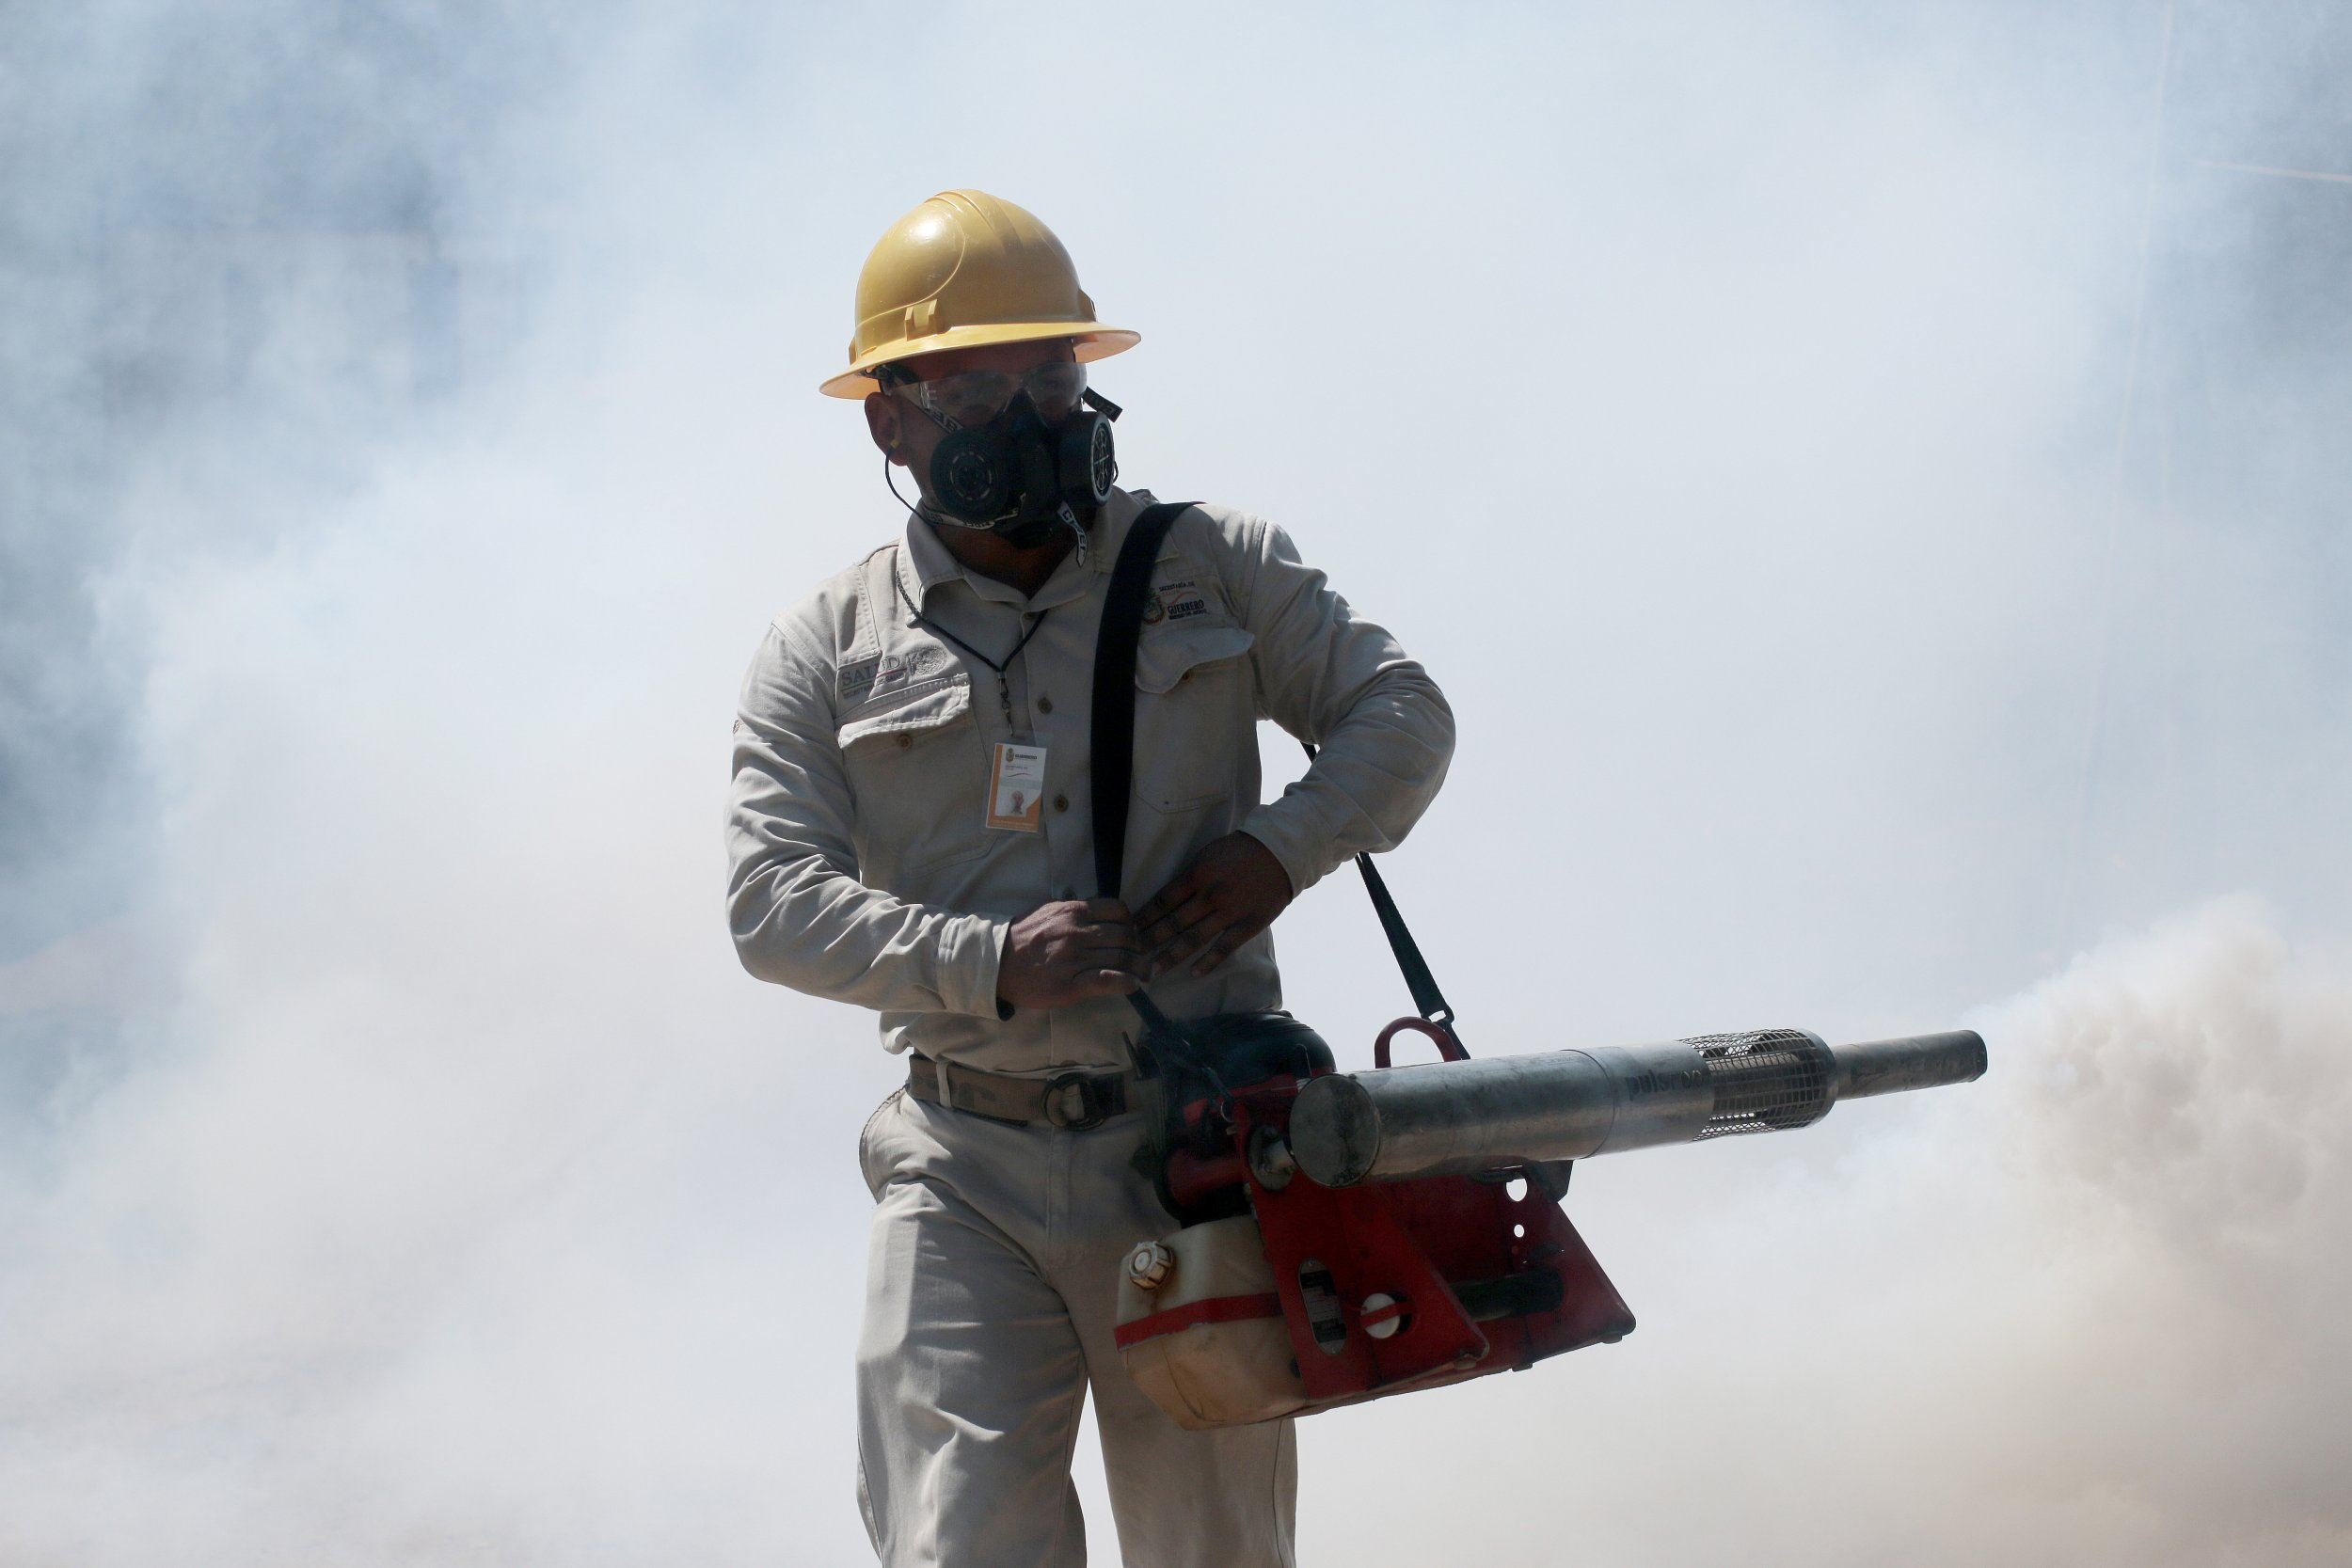 Fumigating to prevent the spread of the Zika virus in Mexico.